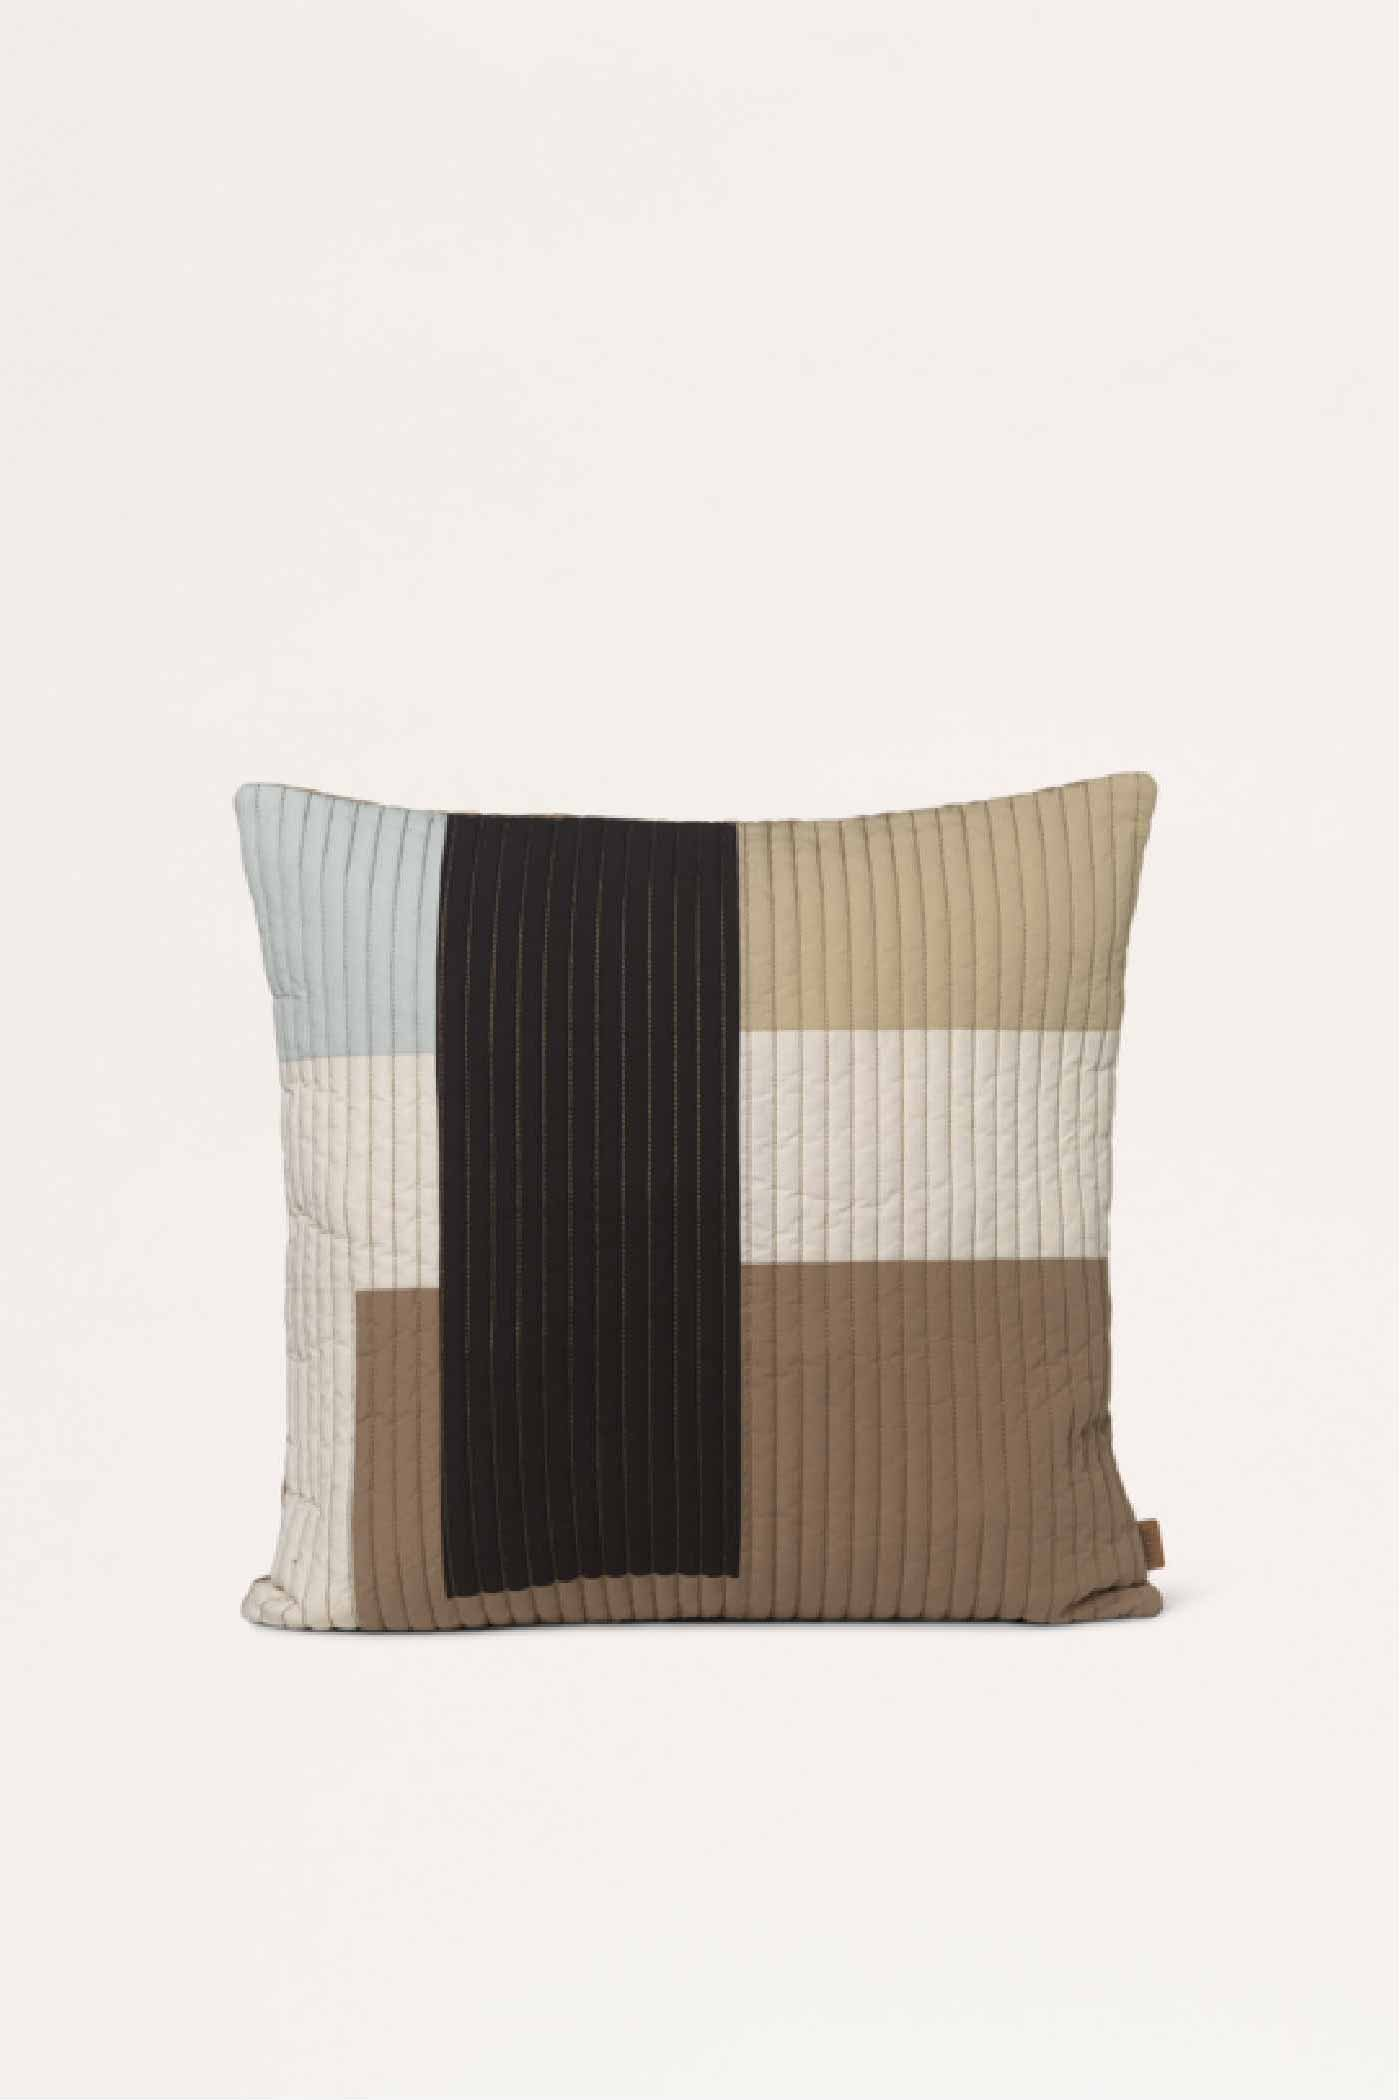 Ferm Living Shay Square Quilt Cushion